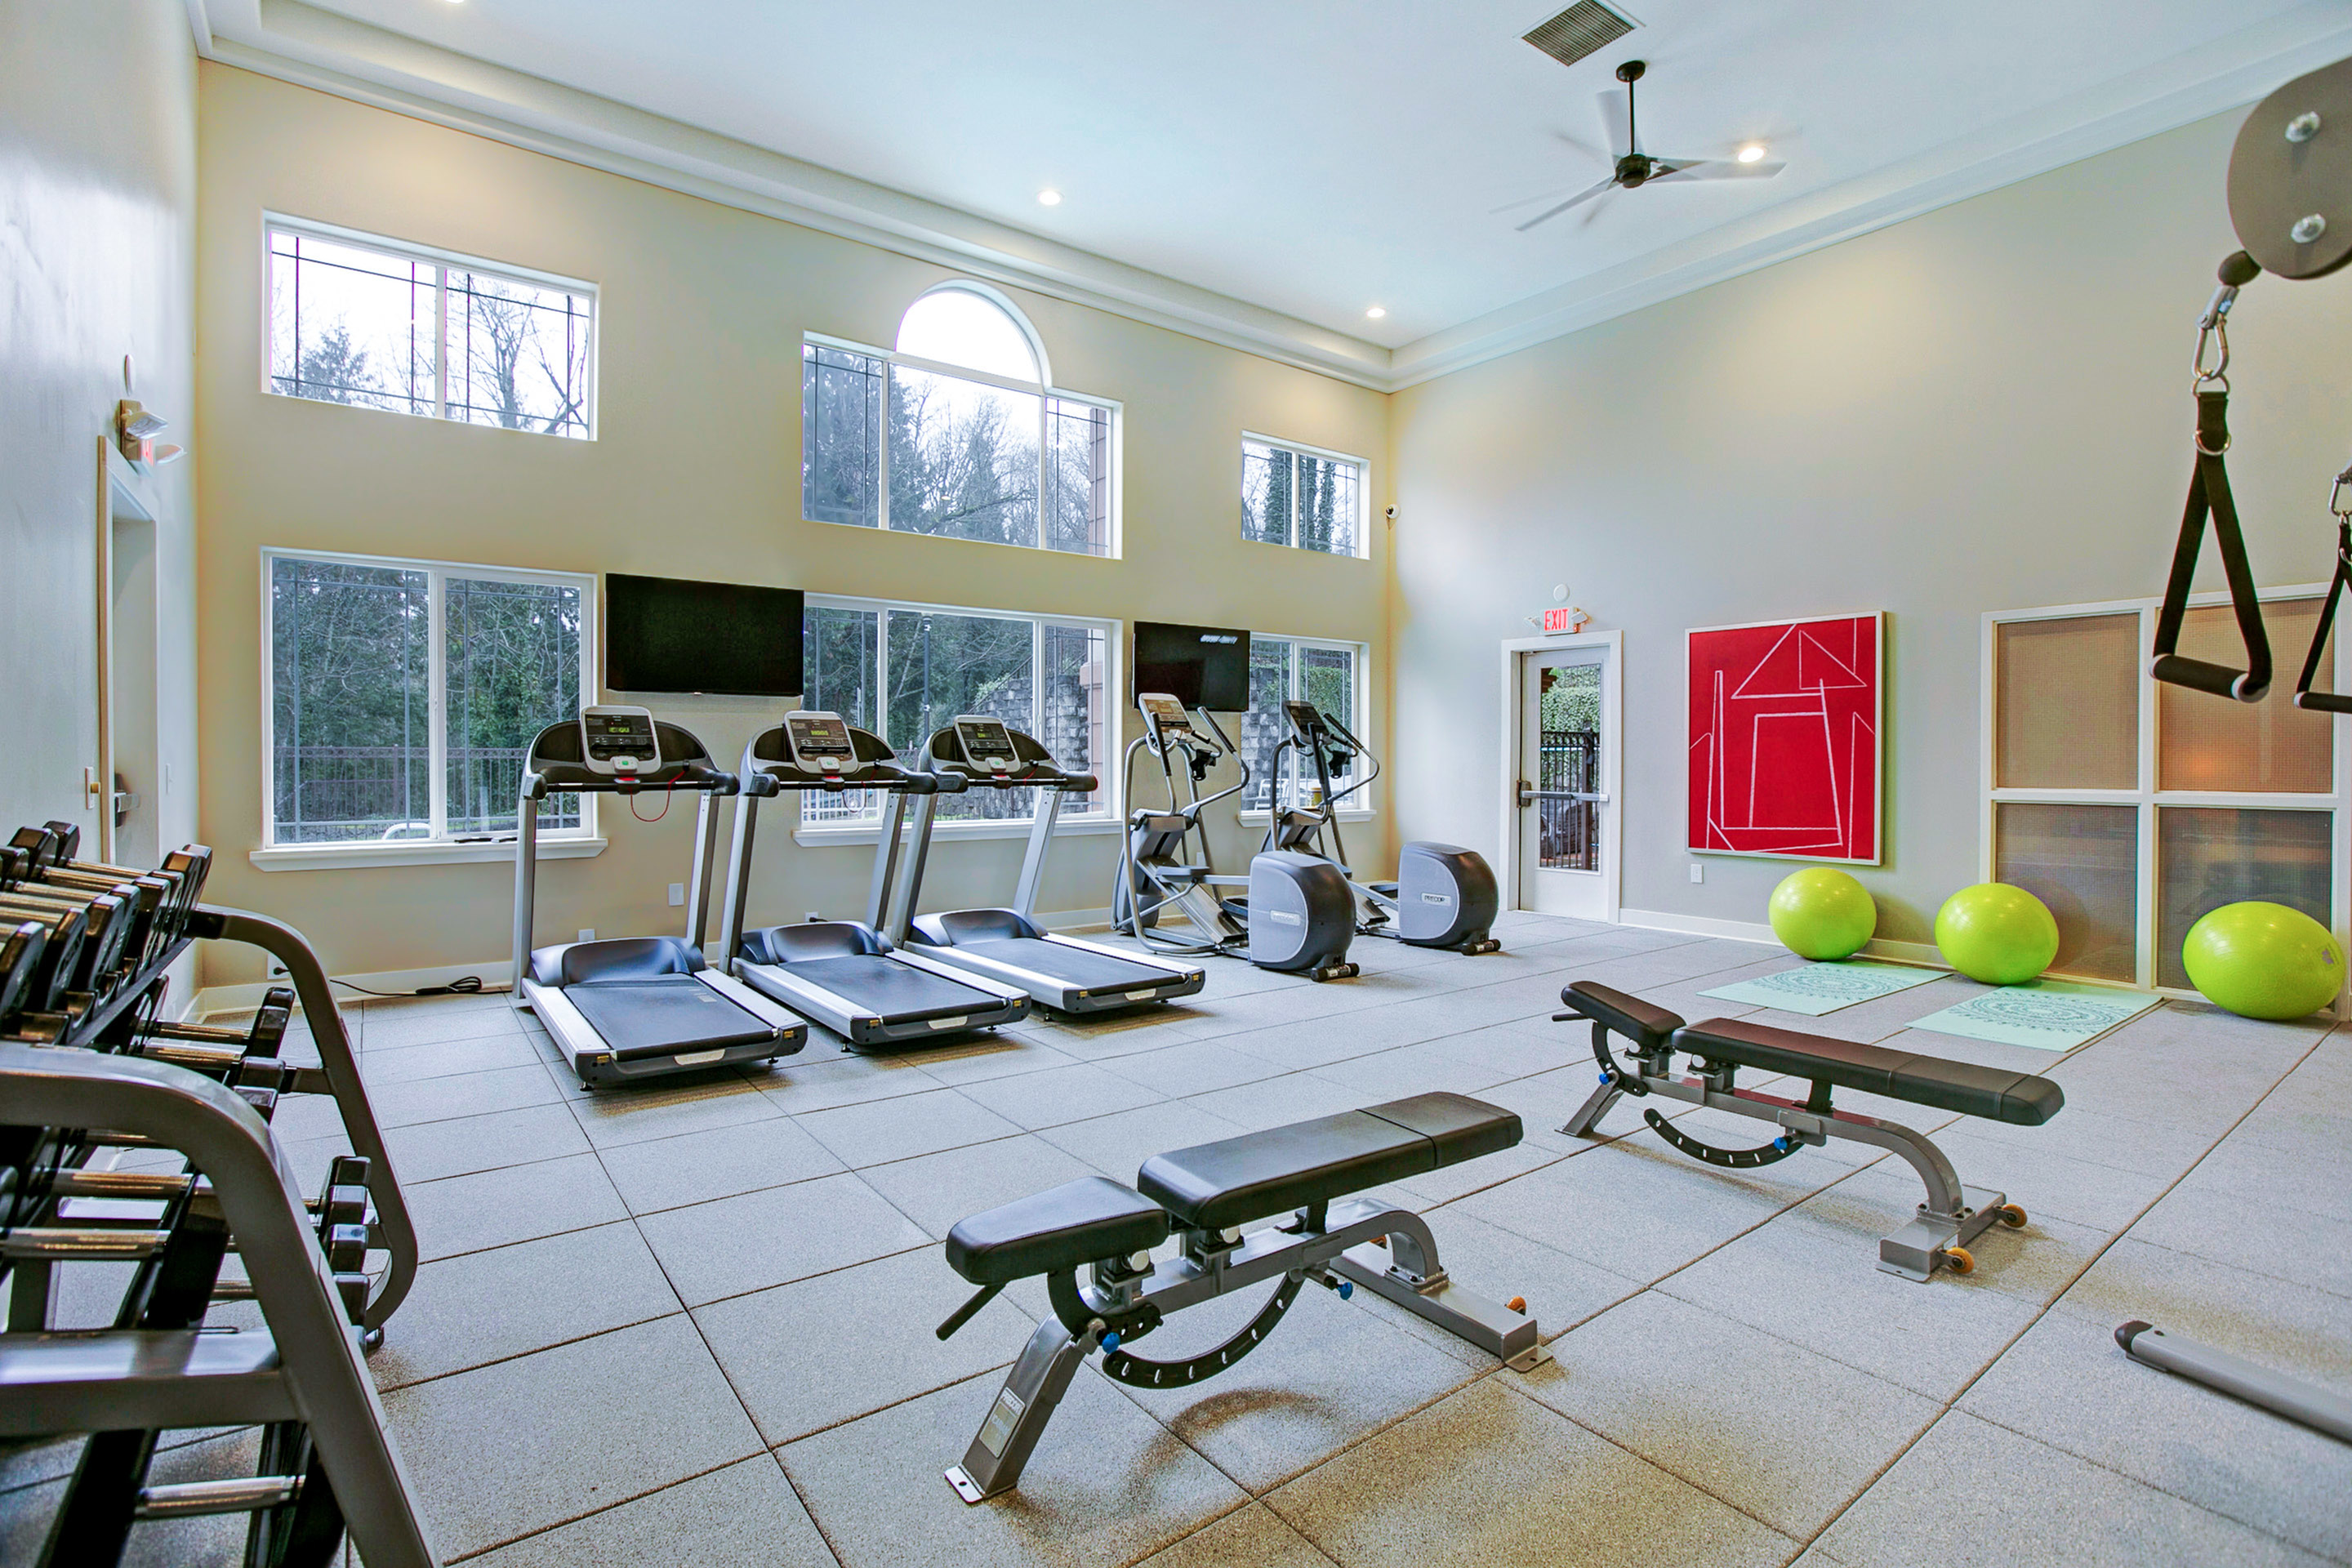 View of Fitness Center, Showing Cardio and Weight Equipment, Stability Balls, Ceiling Fan, and Wall of Windows  at Scott Mountain Apartments